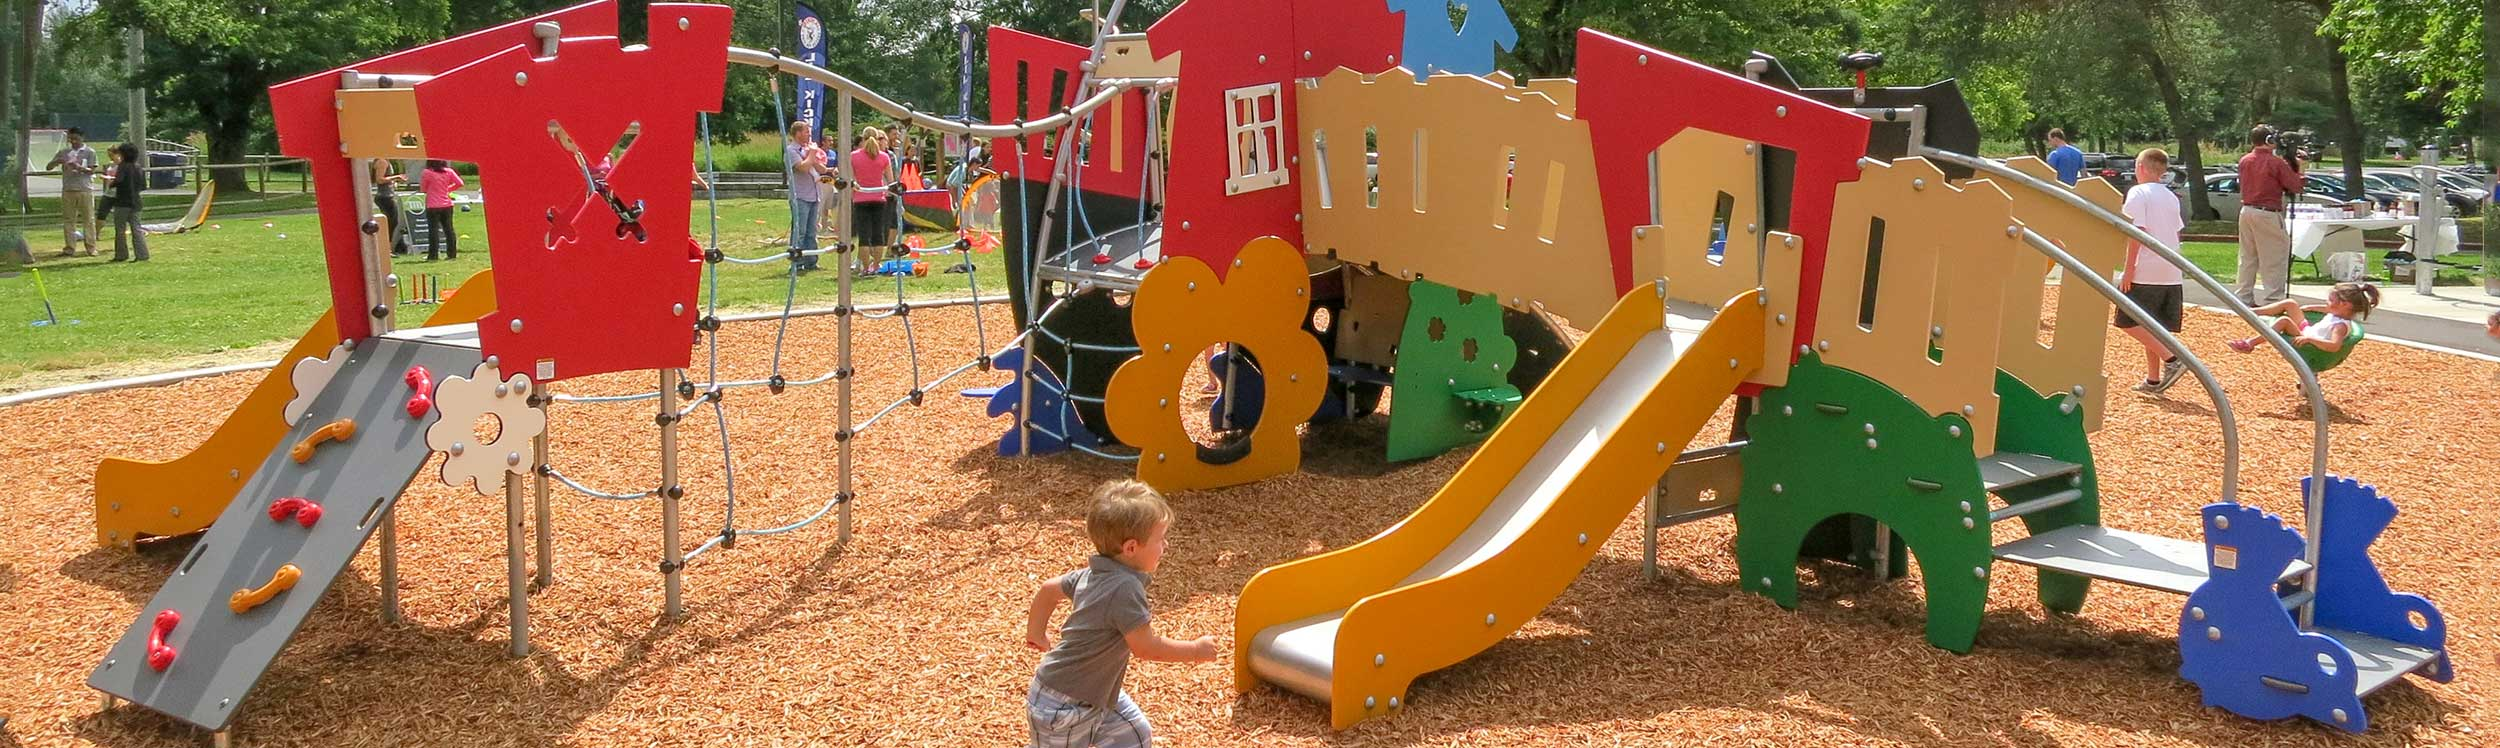 Safe and durable modern playground equipment for toddlers and pre-schoolers